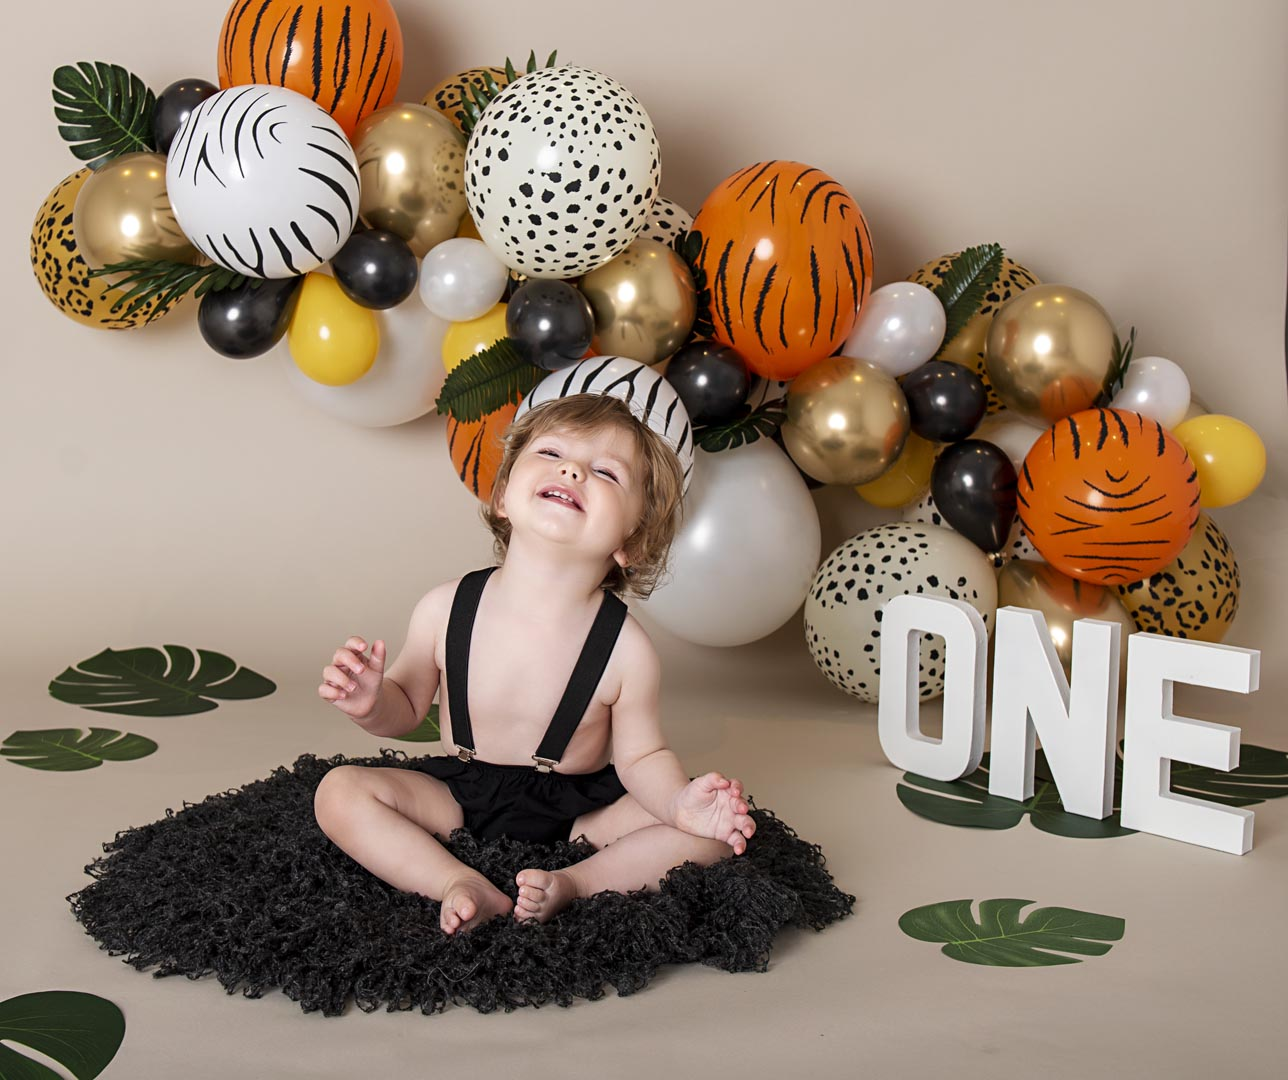 newborn photography | Jenna Noble Photography in Bromley, Bickley, Orpington, Petts Wood and surrounding areas in Kent